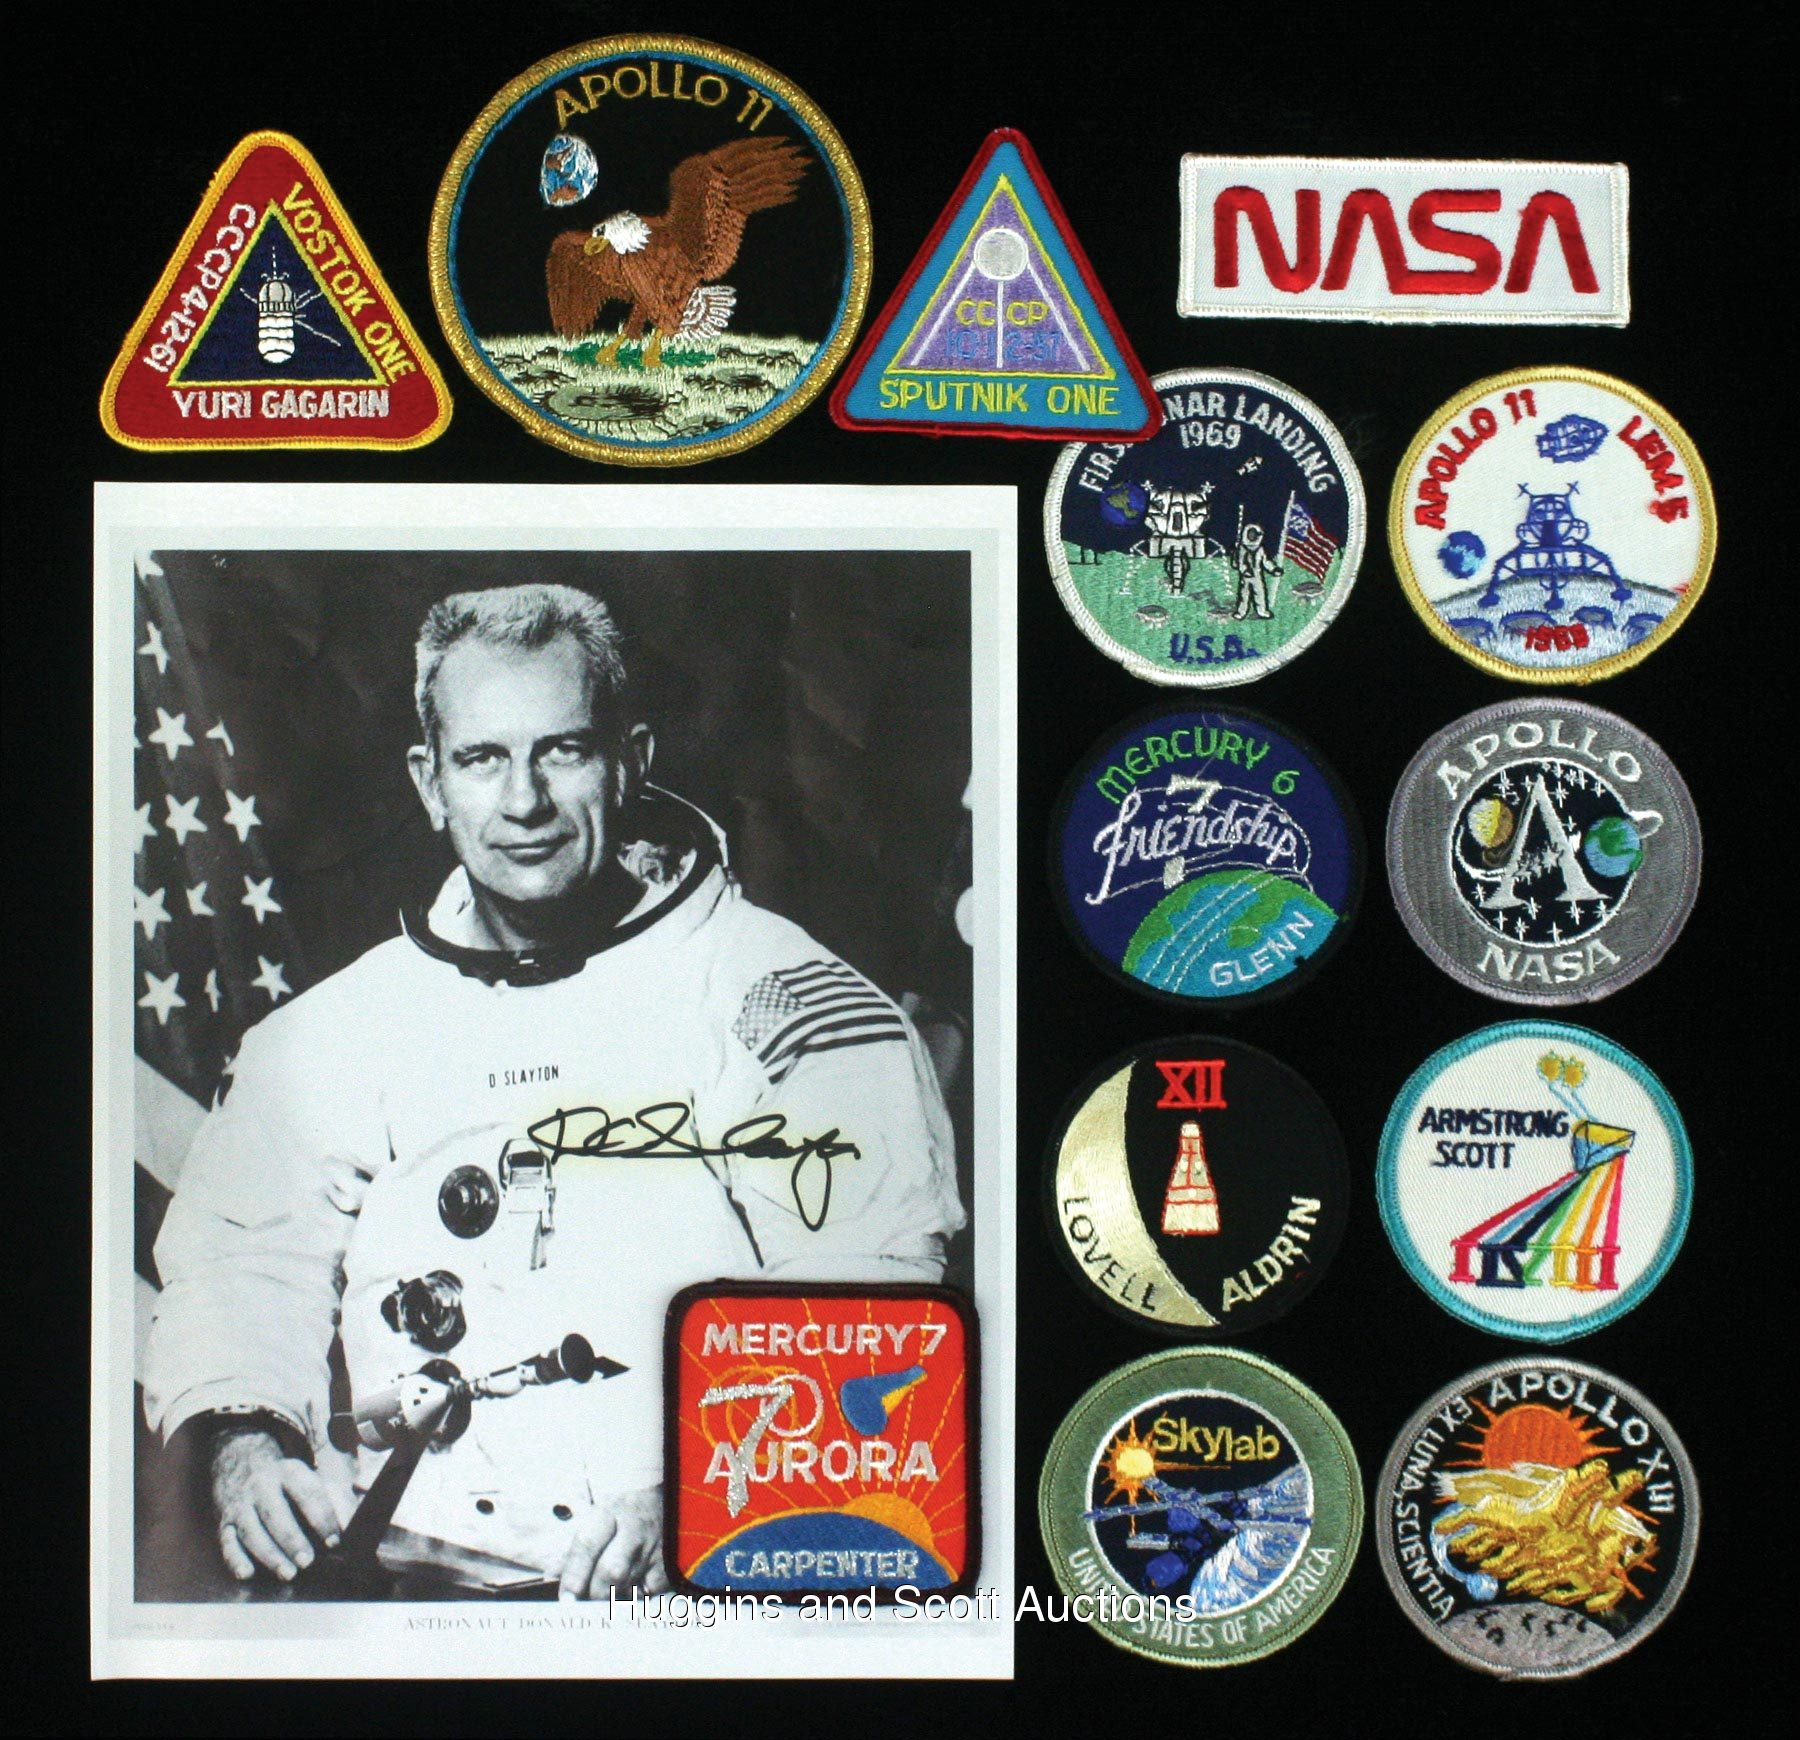 neil armstrong mission name patch - photo #17